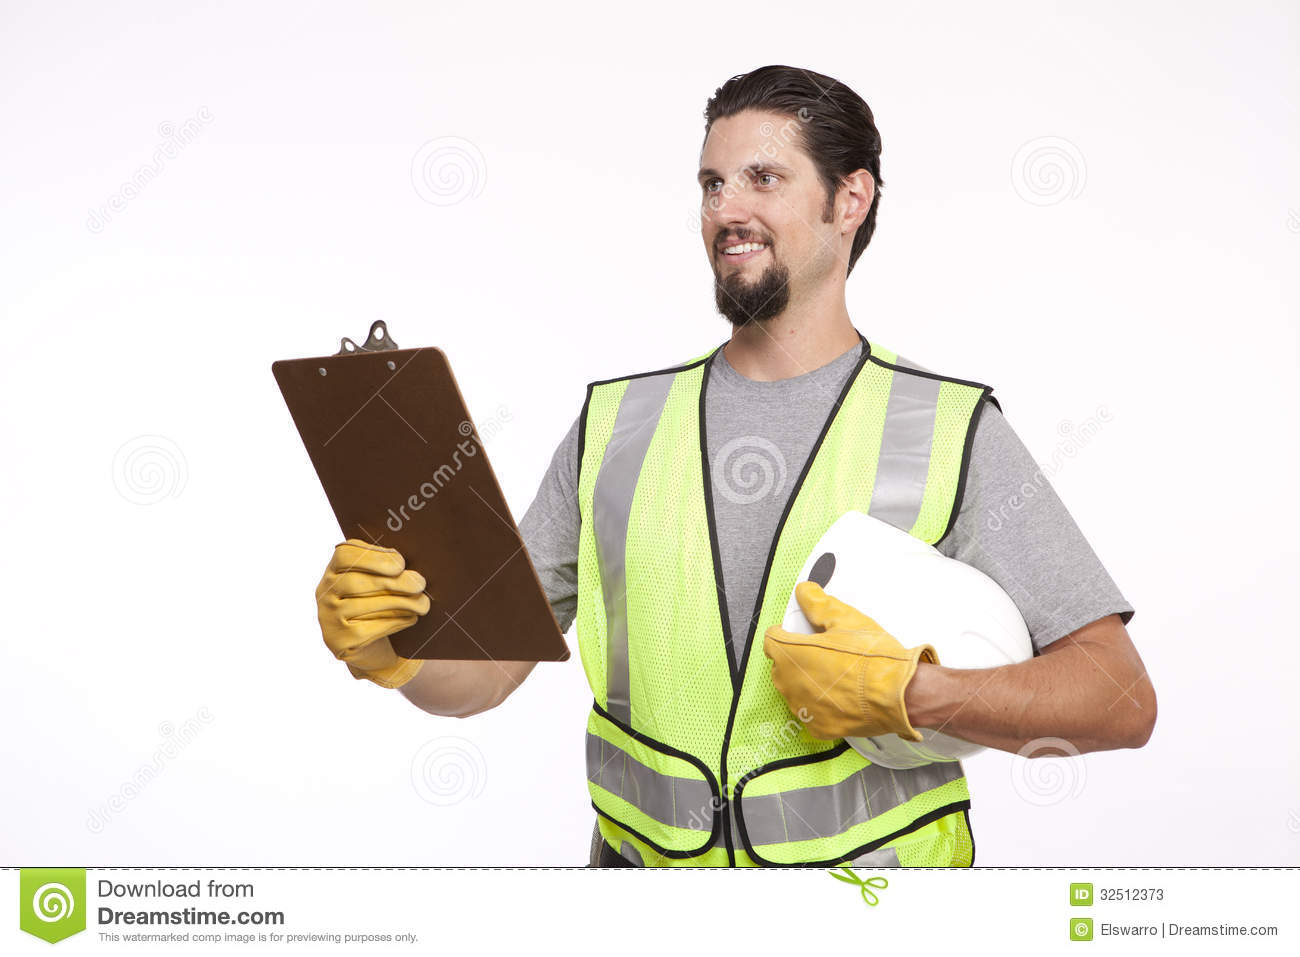 Image of a construction worker with a clipboard and hardhat